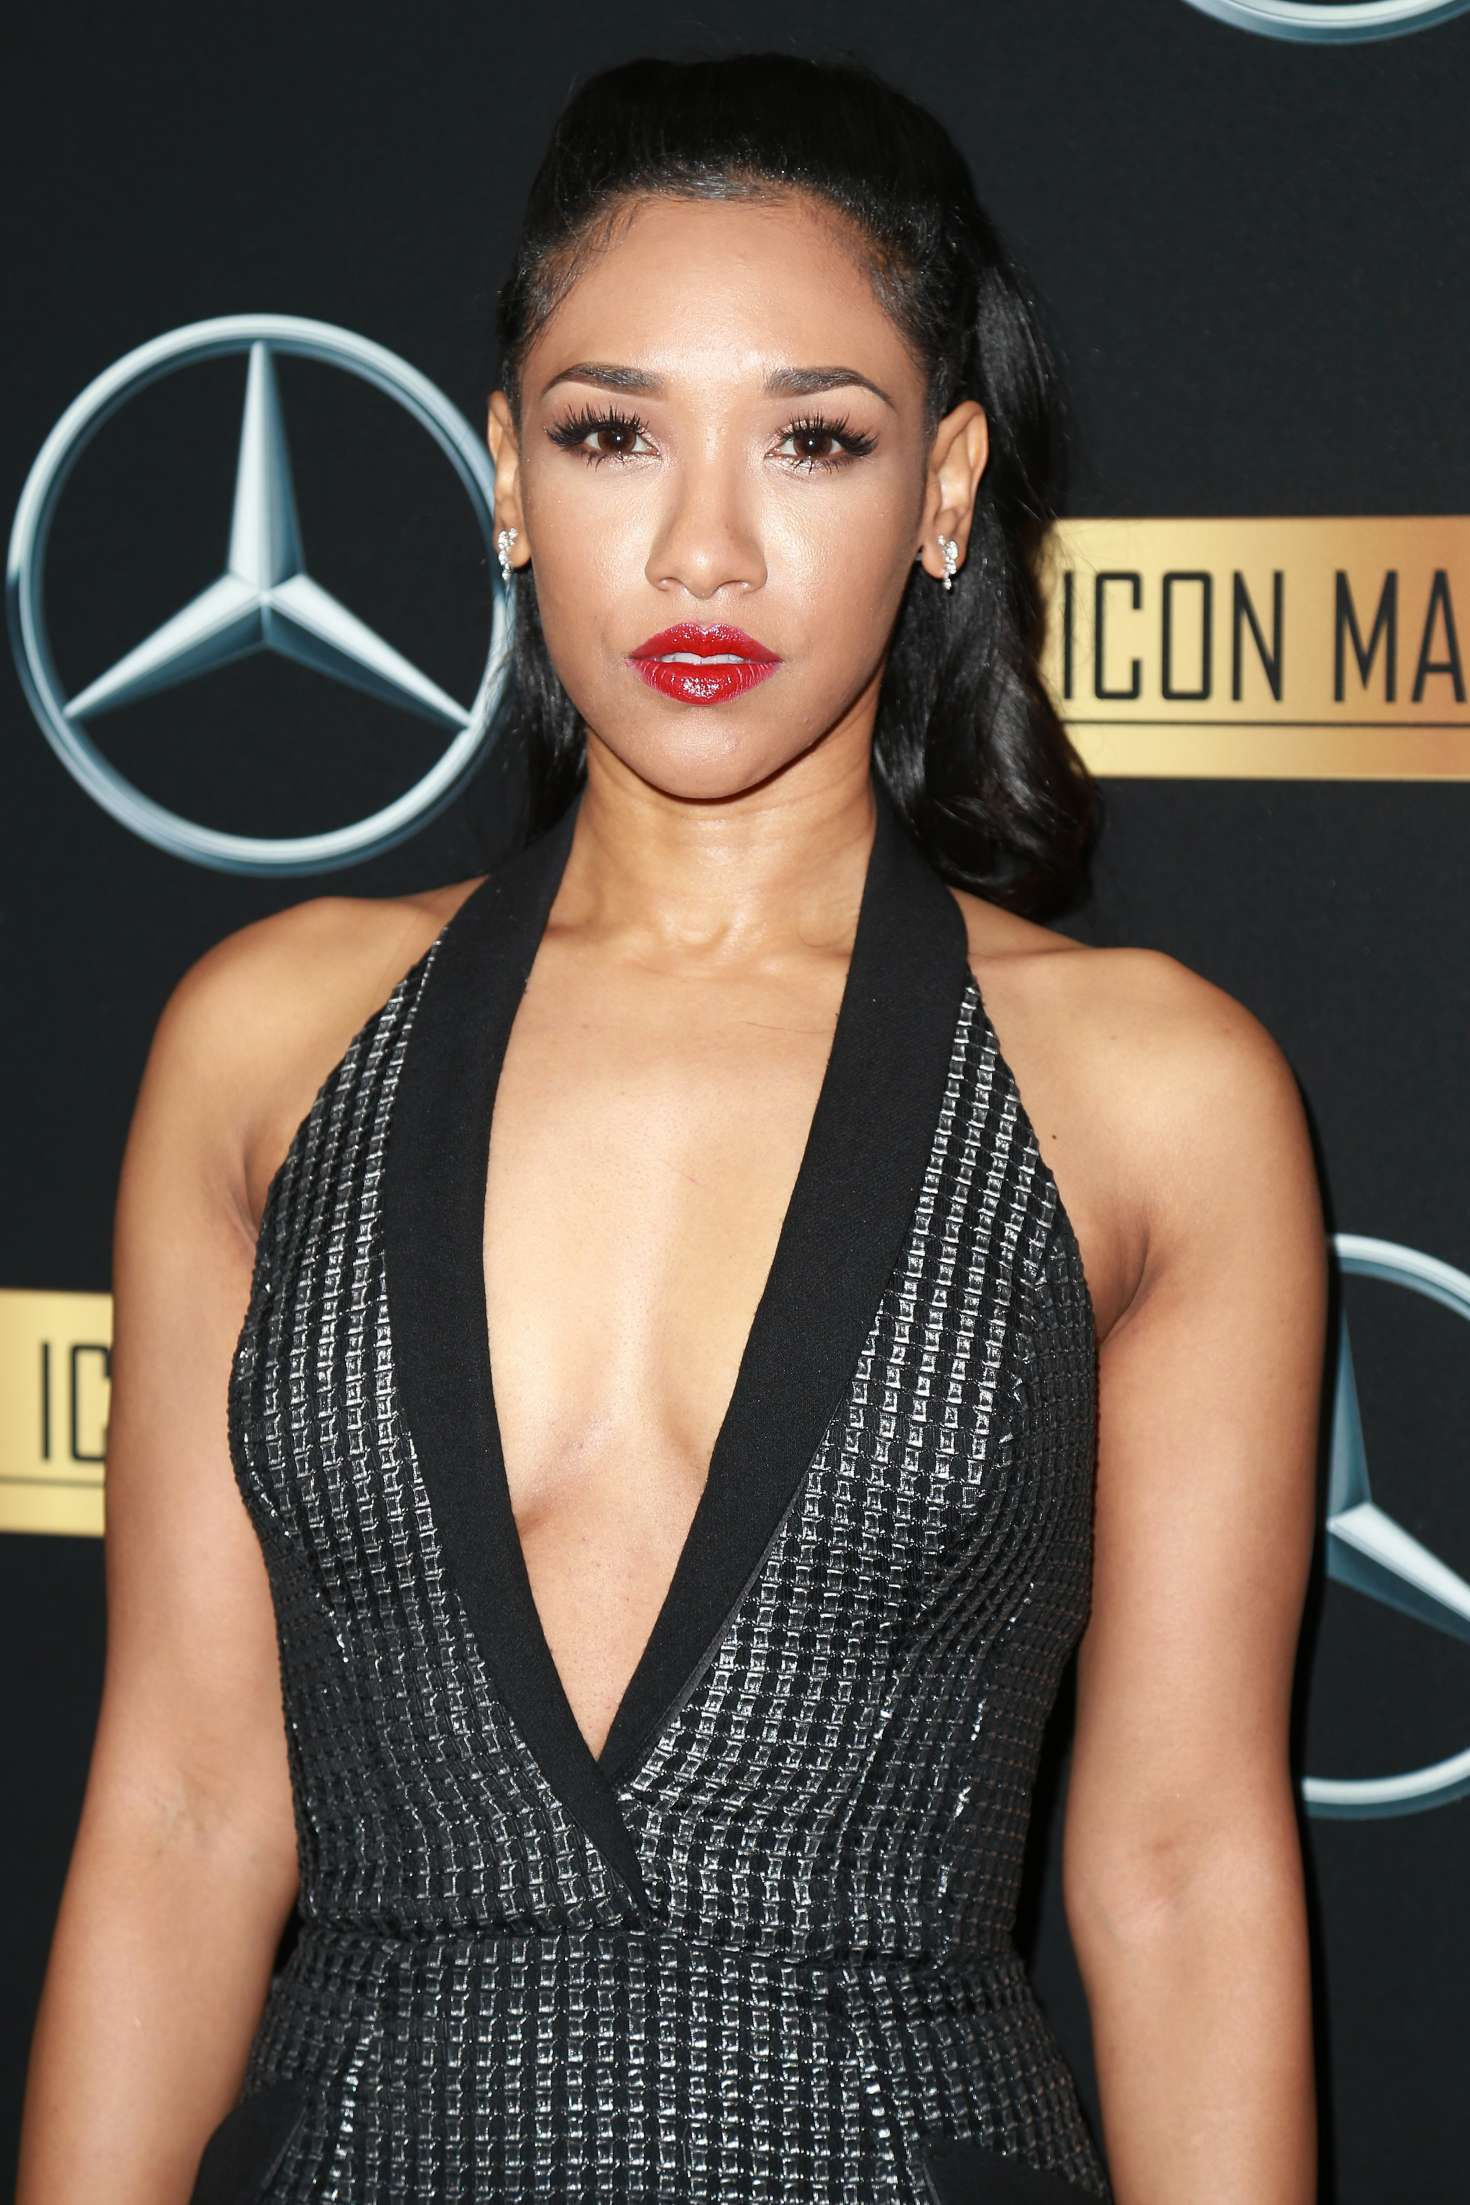 Candice Patton Annual Mercedes Benz Icon Mann 2017